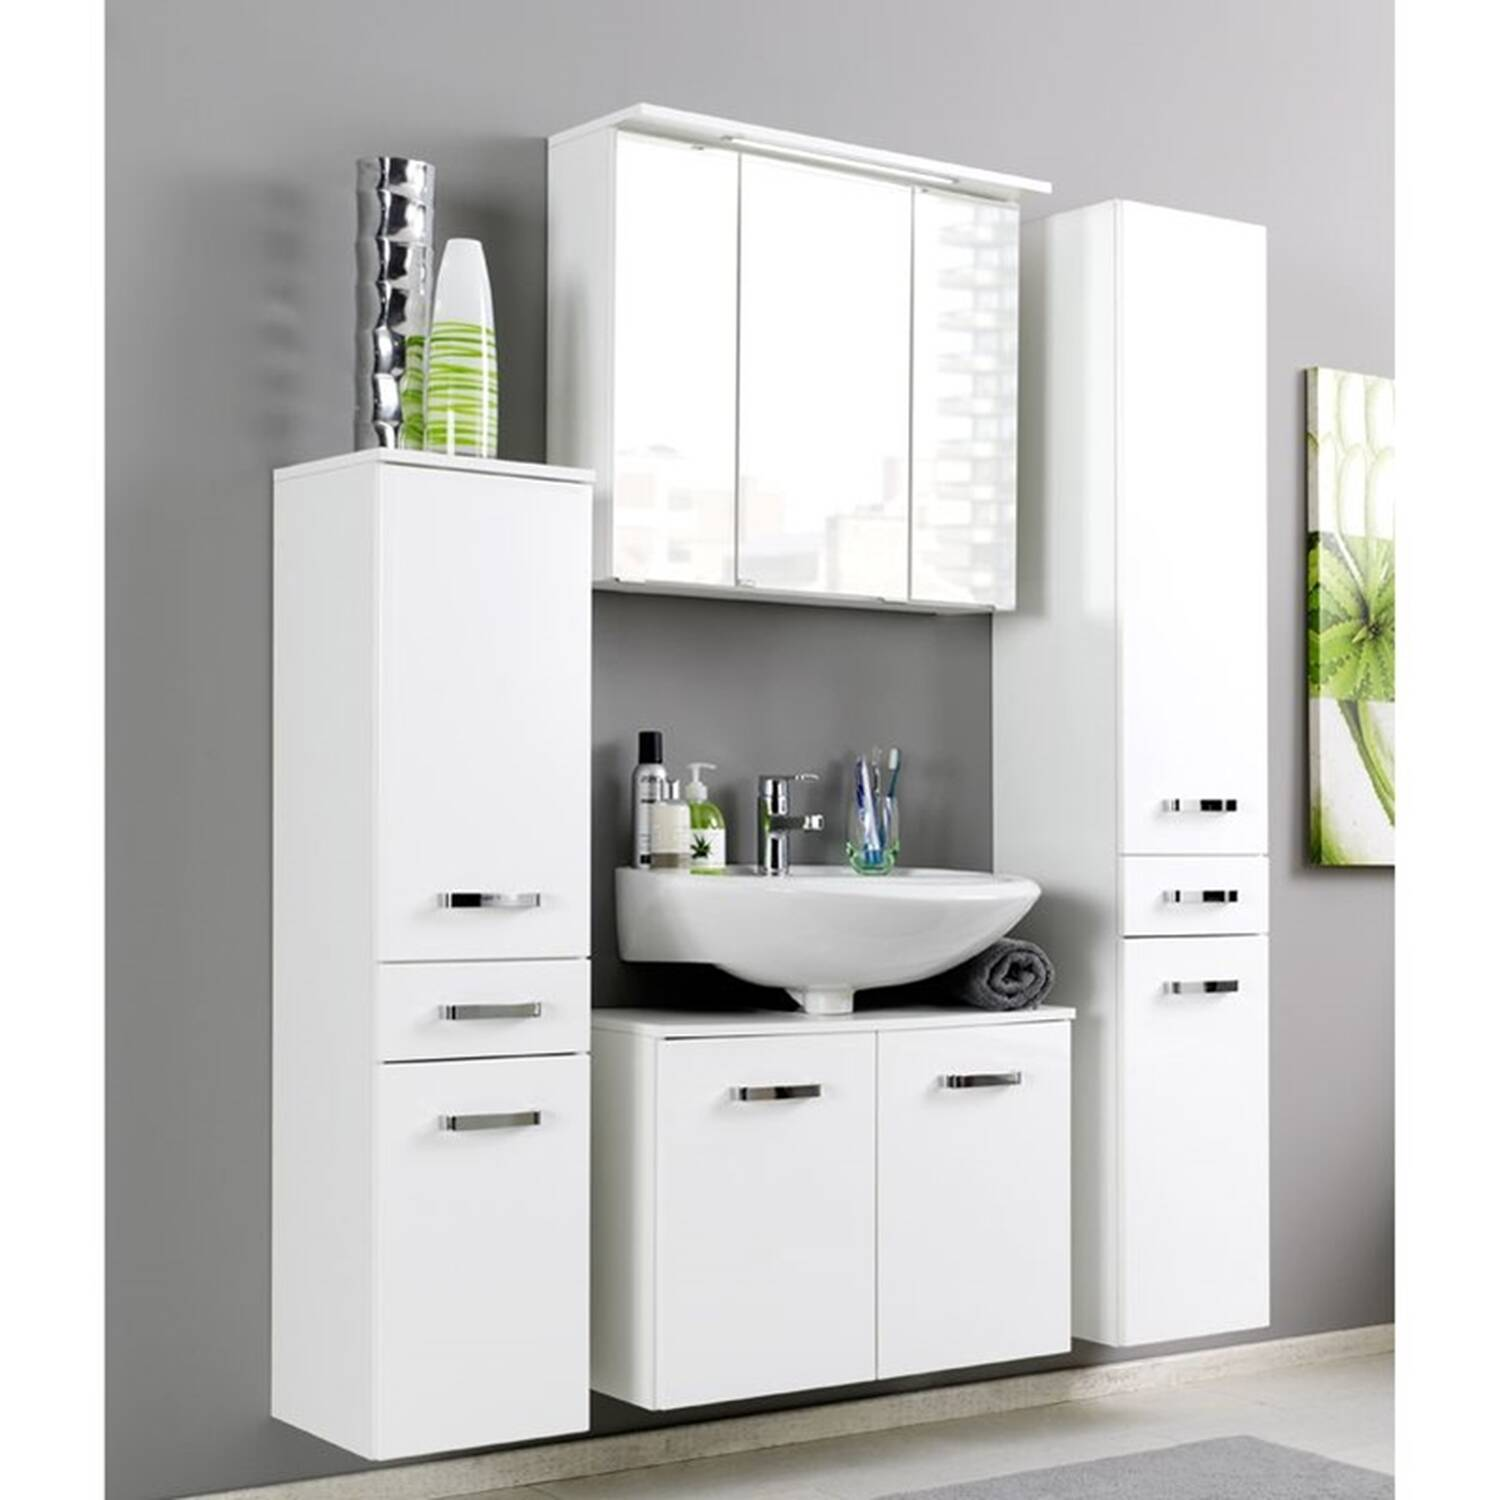 waschbeckenunterschrank 70 cm waschbeckenunterschrank salona wei 70 cm bad badschr nke. Black Bedroom Furniture Sets. Home Design Ideas